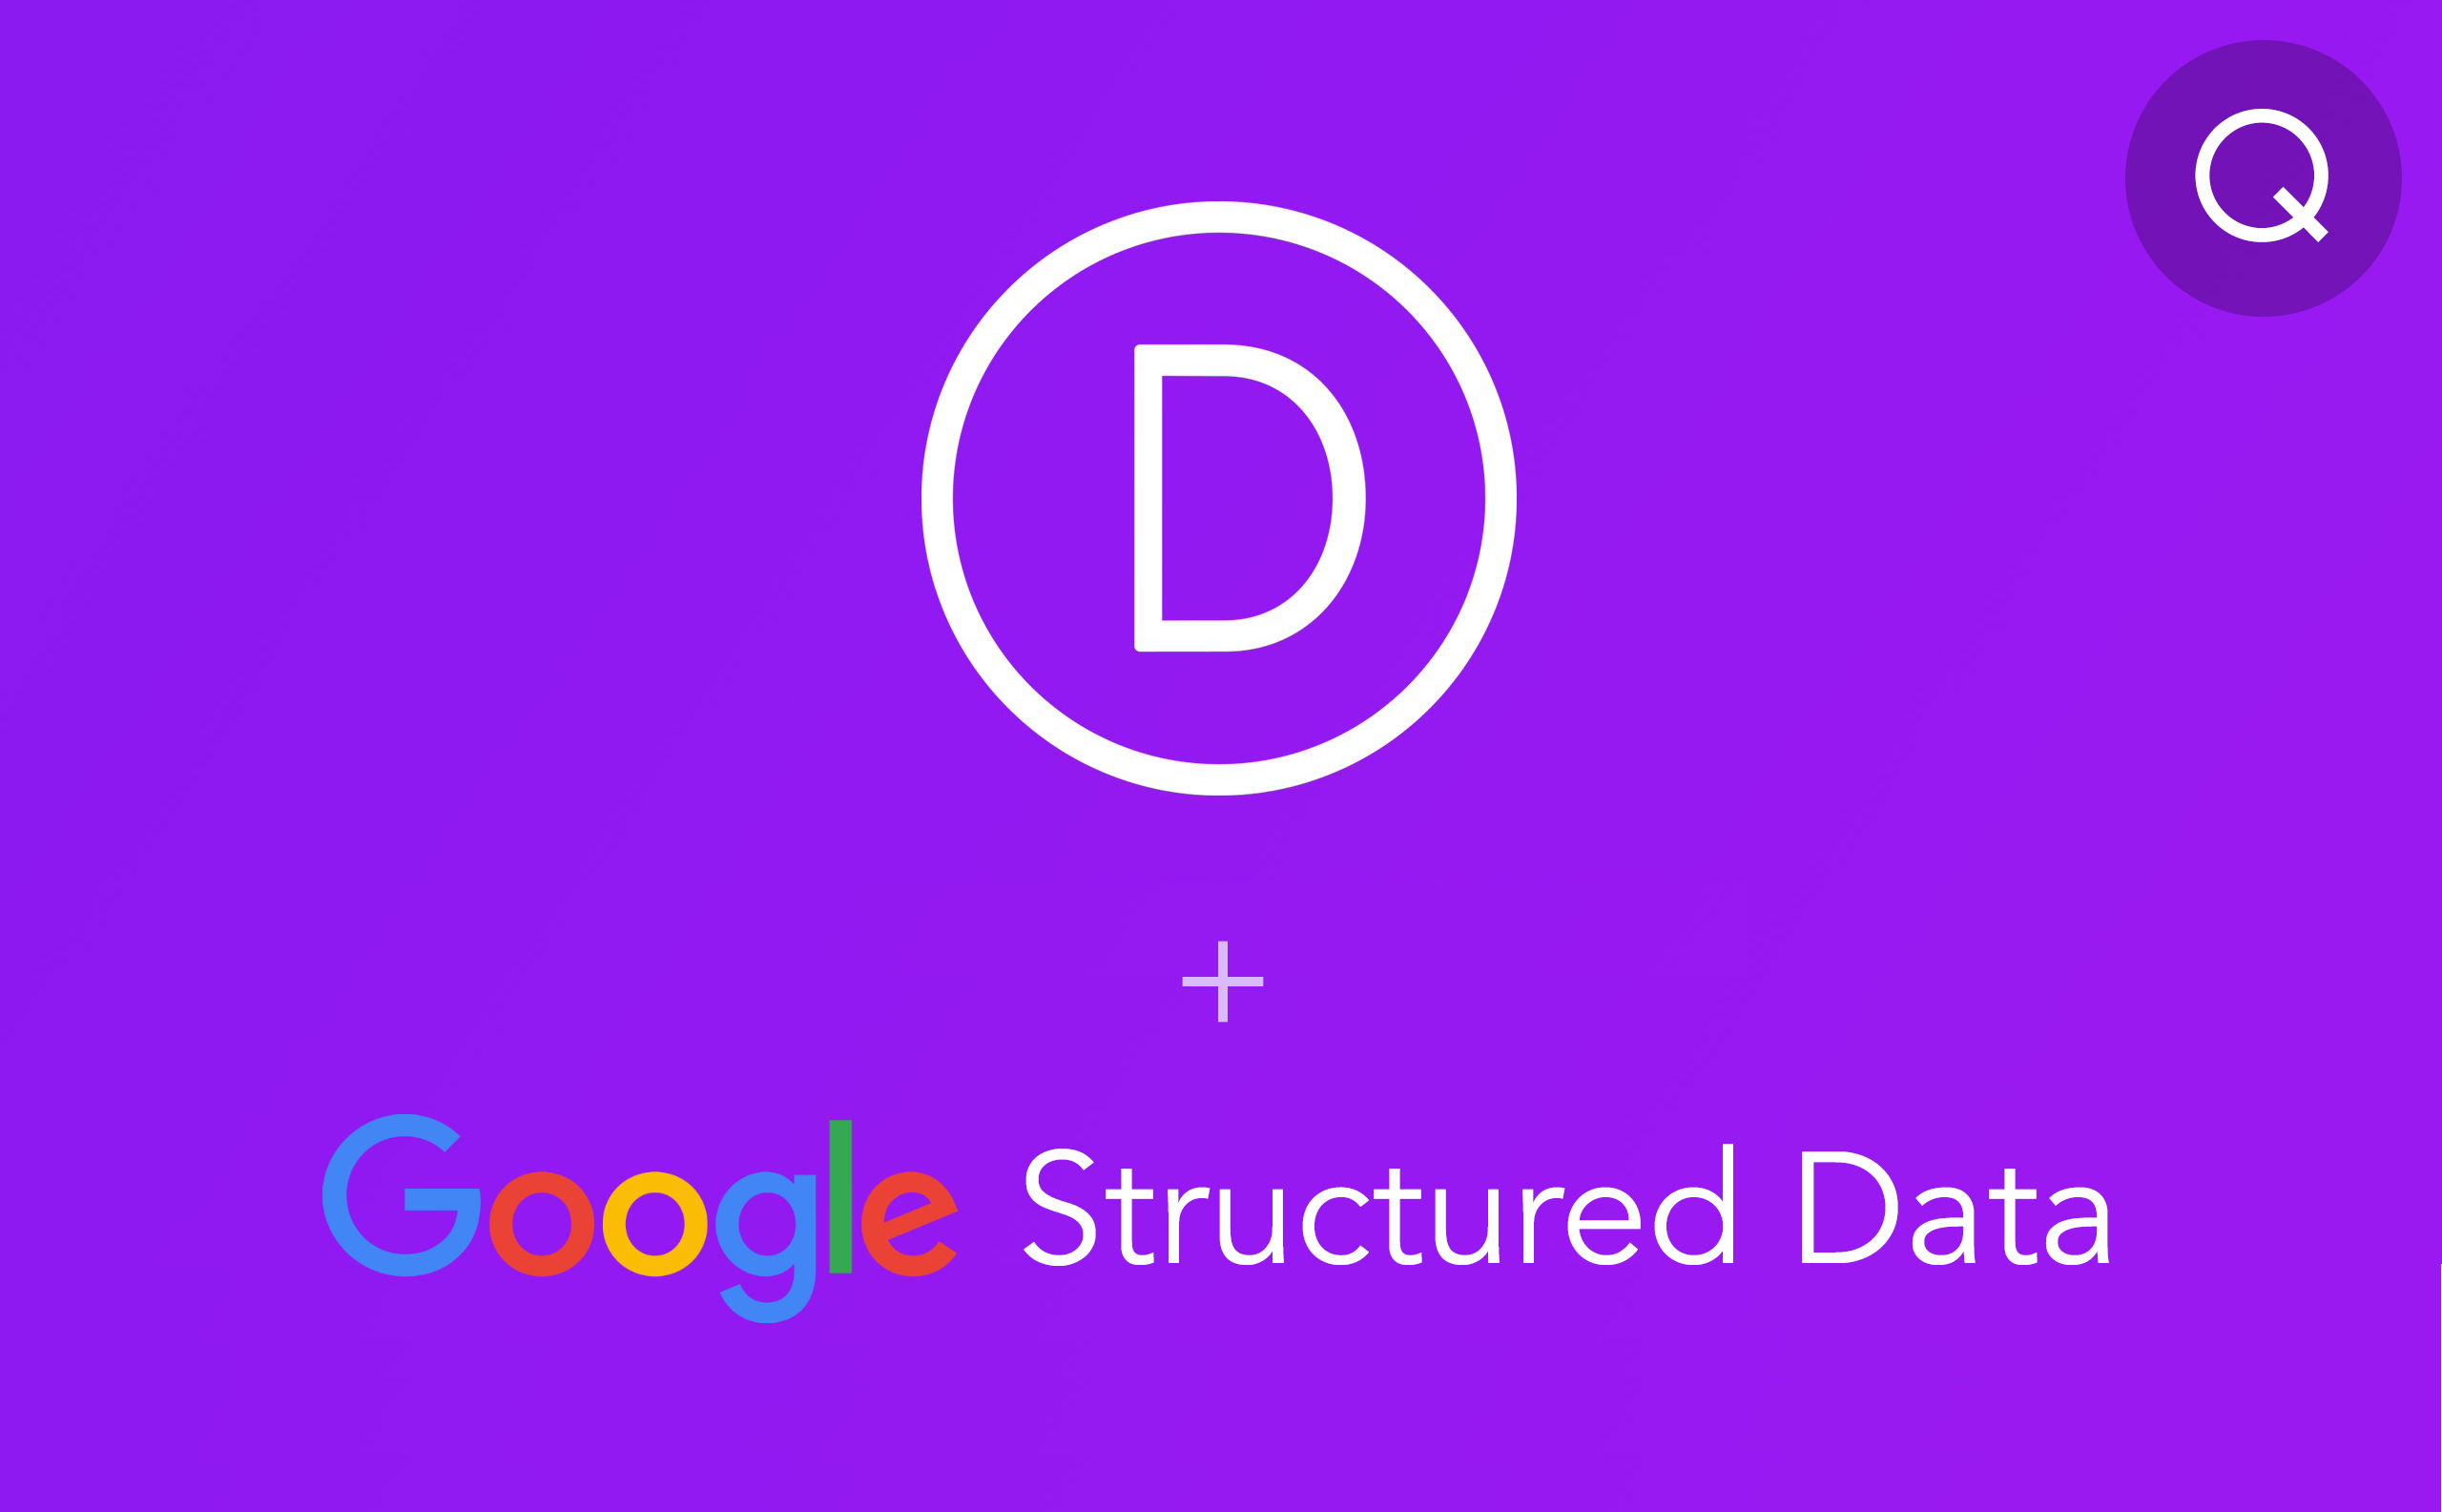 Google Structured data in Divi theme